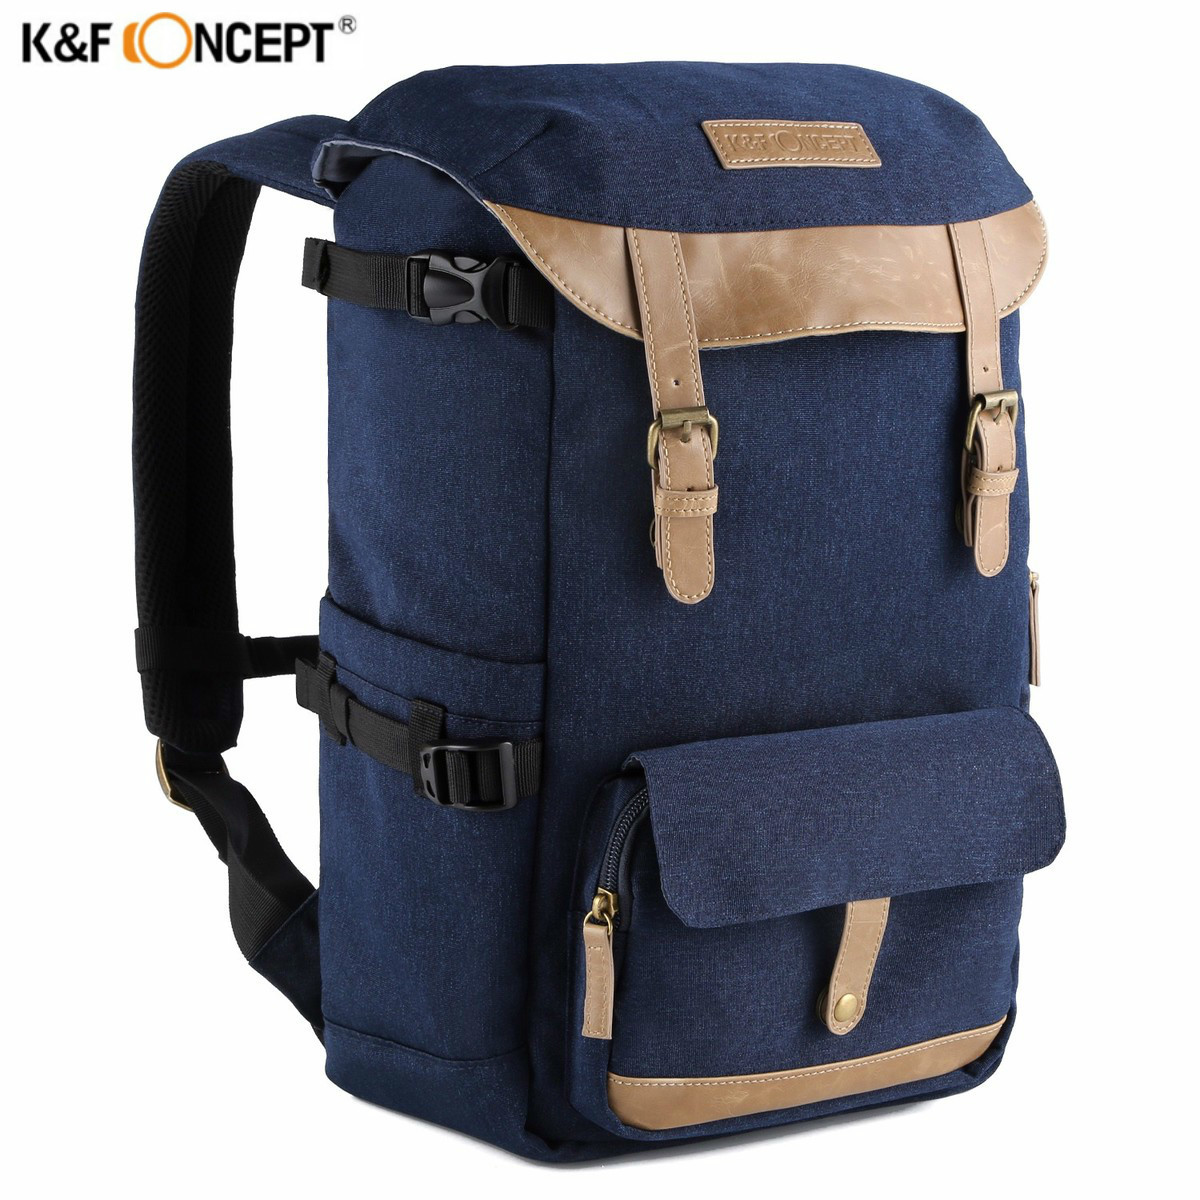 K&F CONCEPT Multifunctional Camera Backpack Fashionable Photo/Video Bag Case With Large Capacity For Canon Nikon SLR DSLR Camera jealiot multifunctional professional camera shoulder bag waterproof shockproof big digital video photo bag case for dslr canon